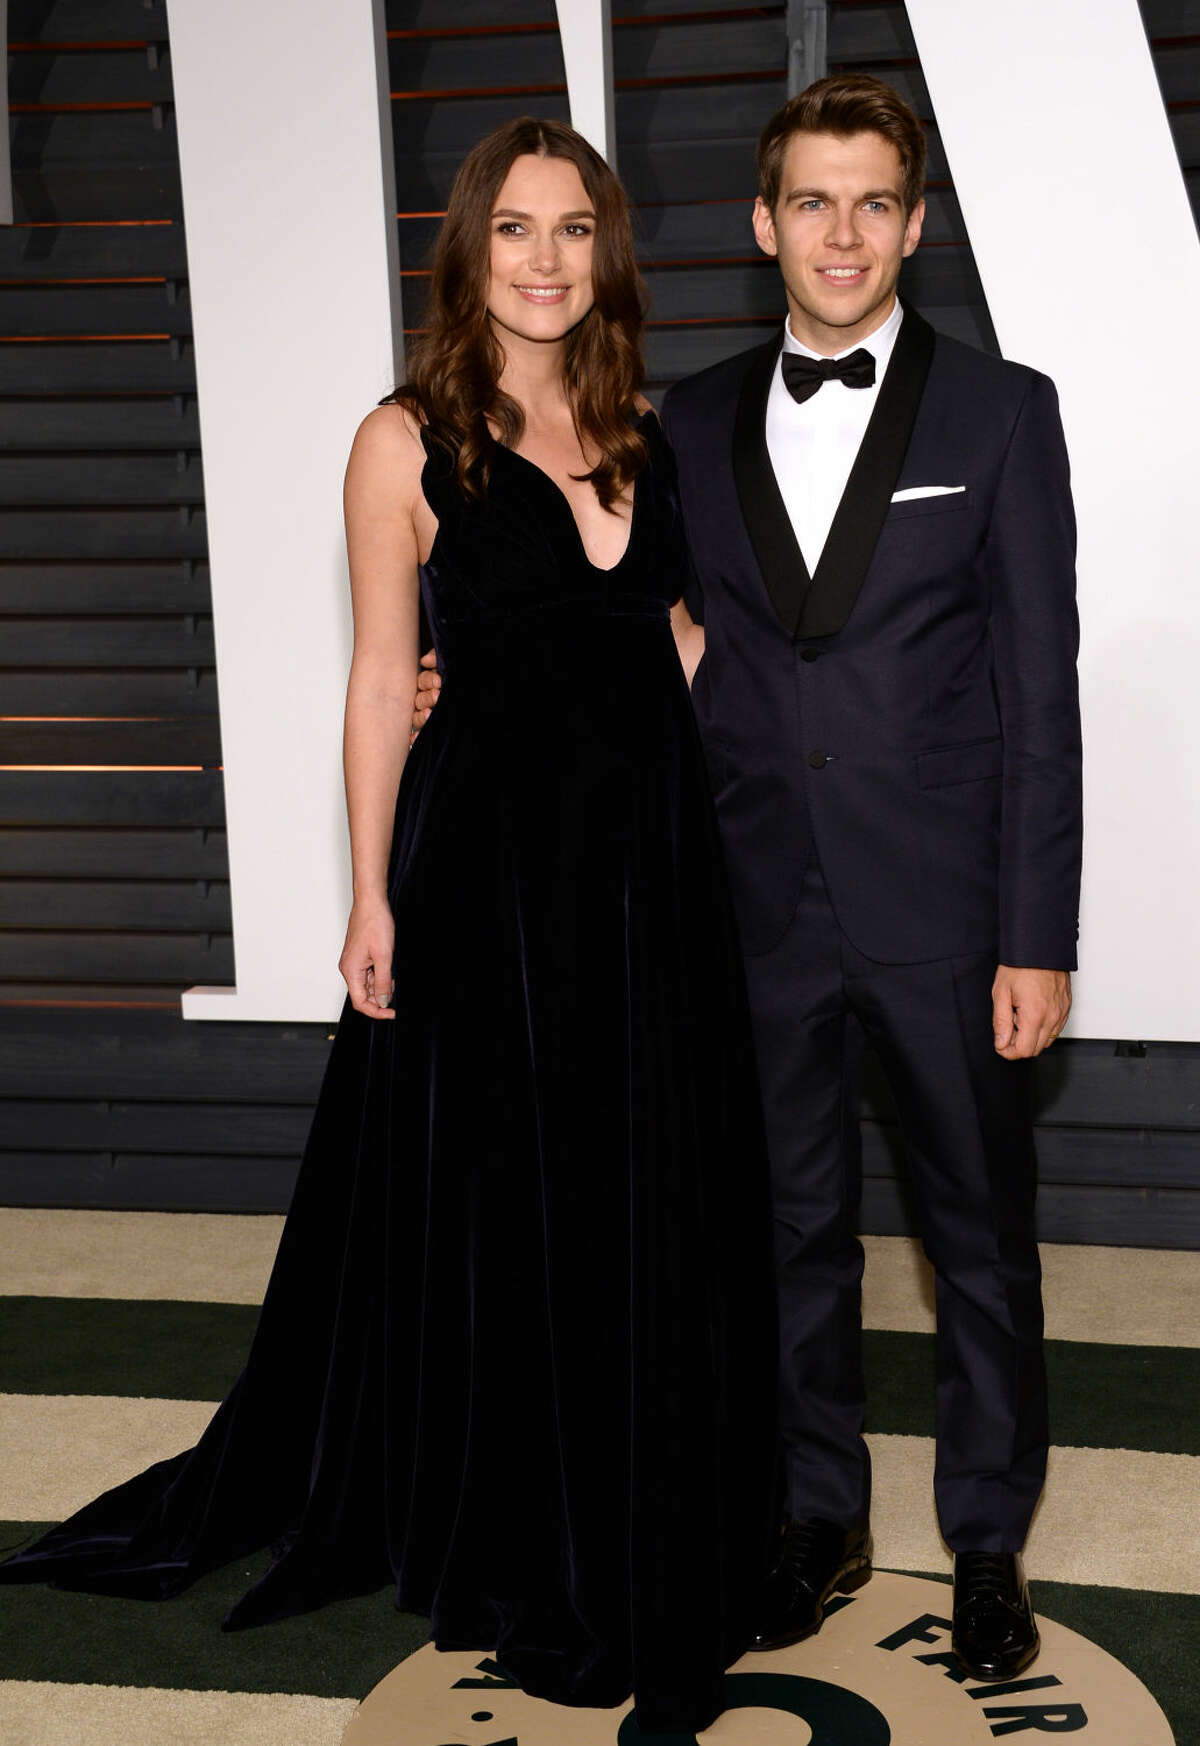 Keira Knightley, left, and James Righton arrive at the 2015 Vanity Fair Oscar Party on Sunday, Feb. 22, 2015, in Beverly Hills, Calif. (Photo by Evan Agostini/Invision/AP)